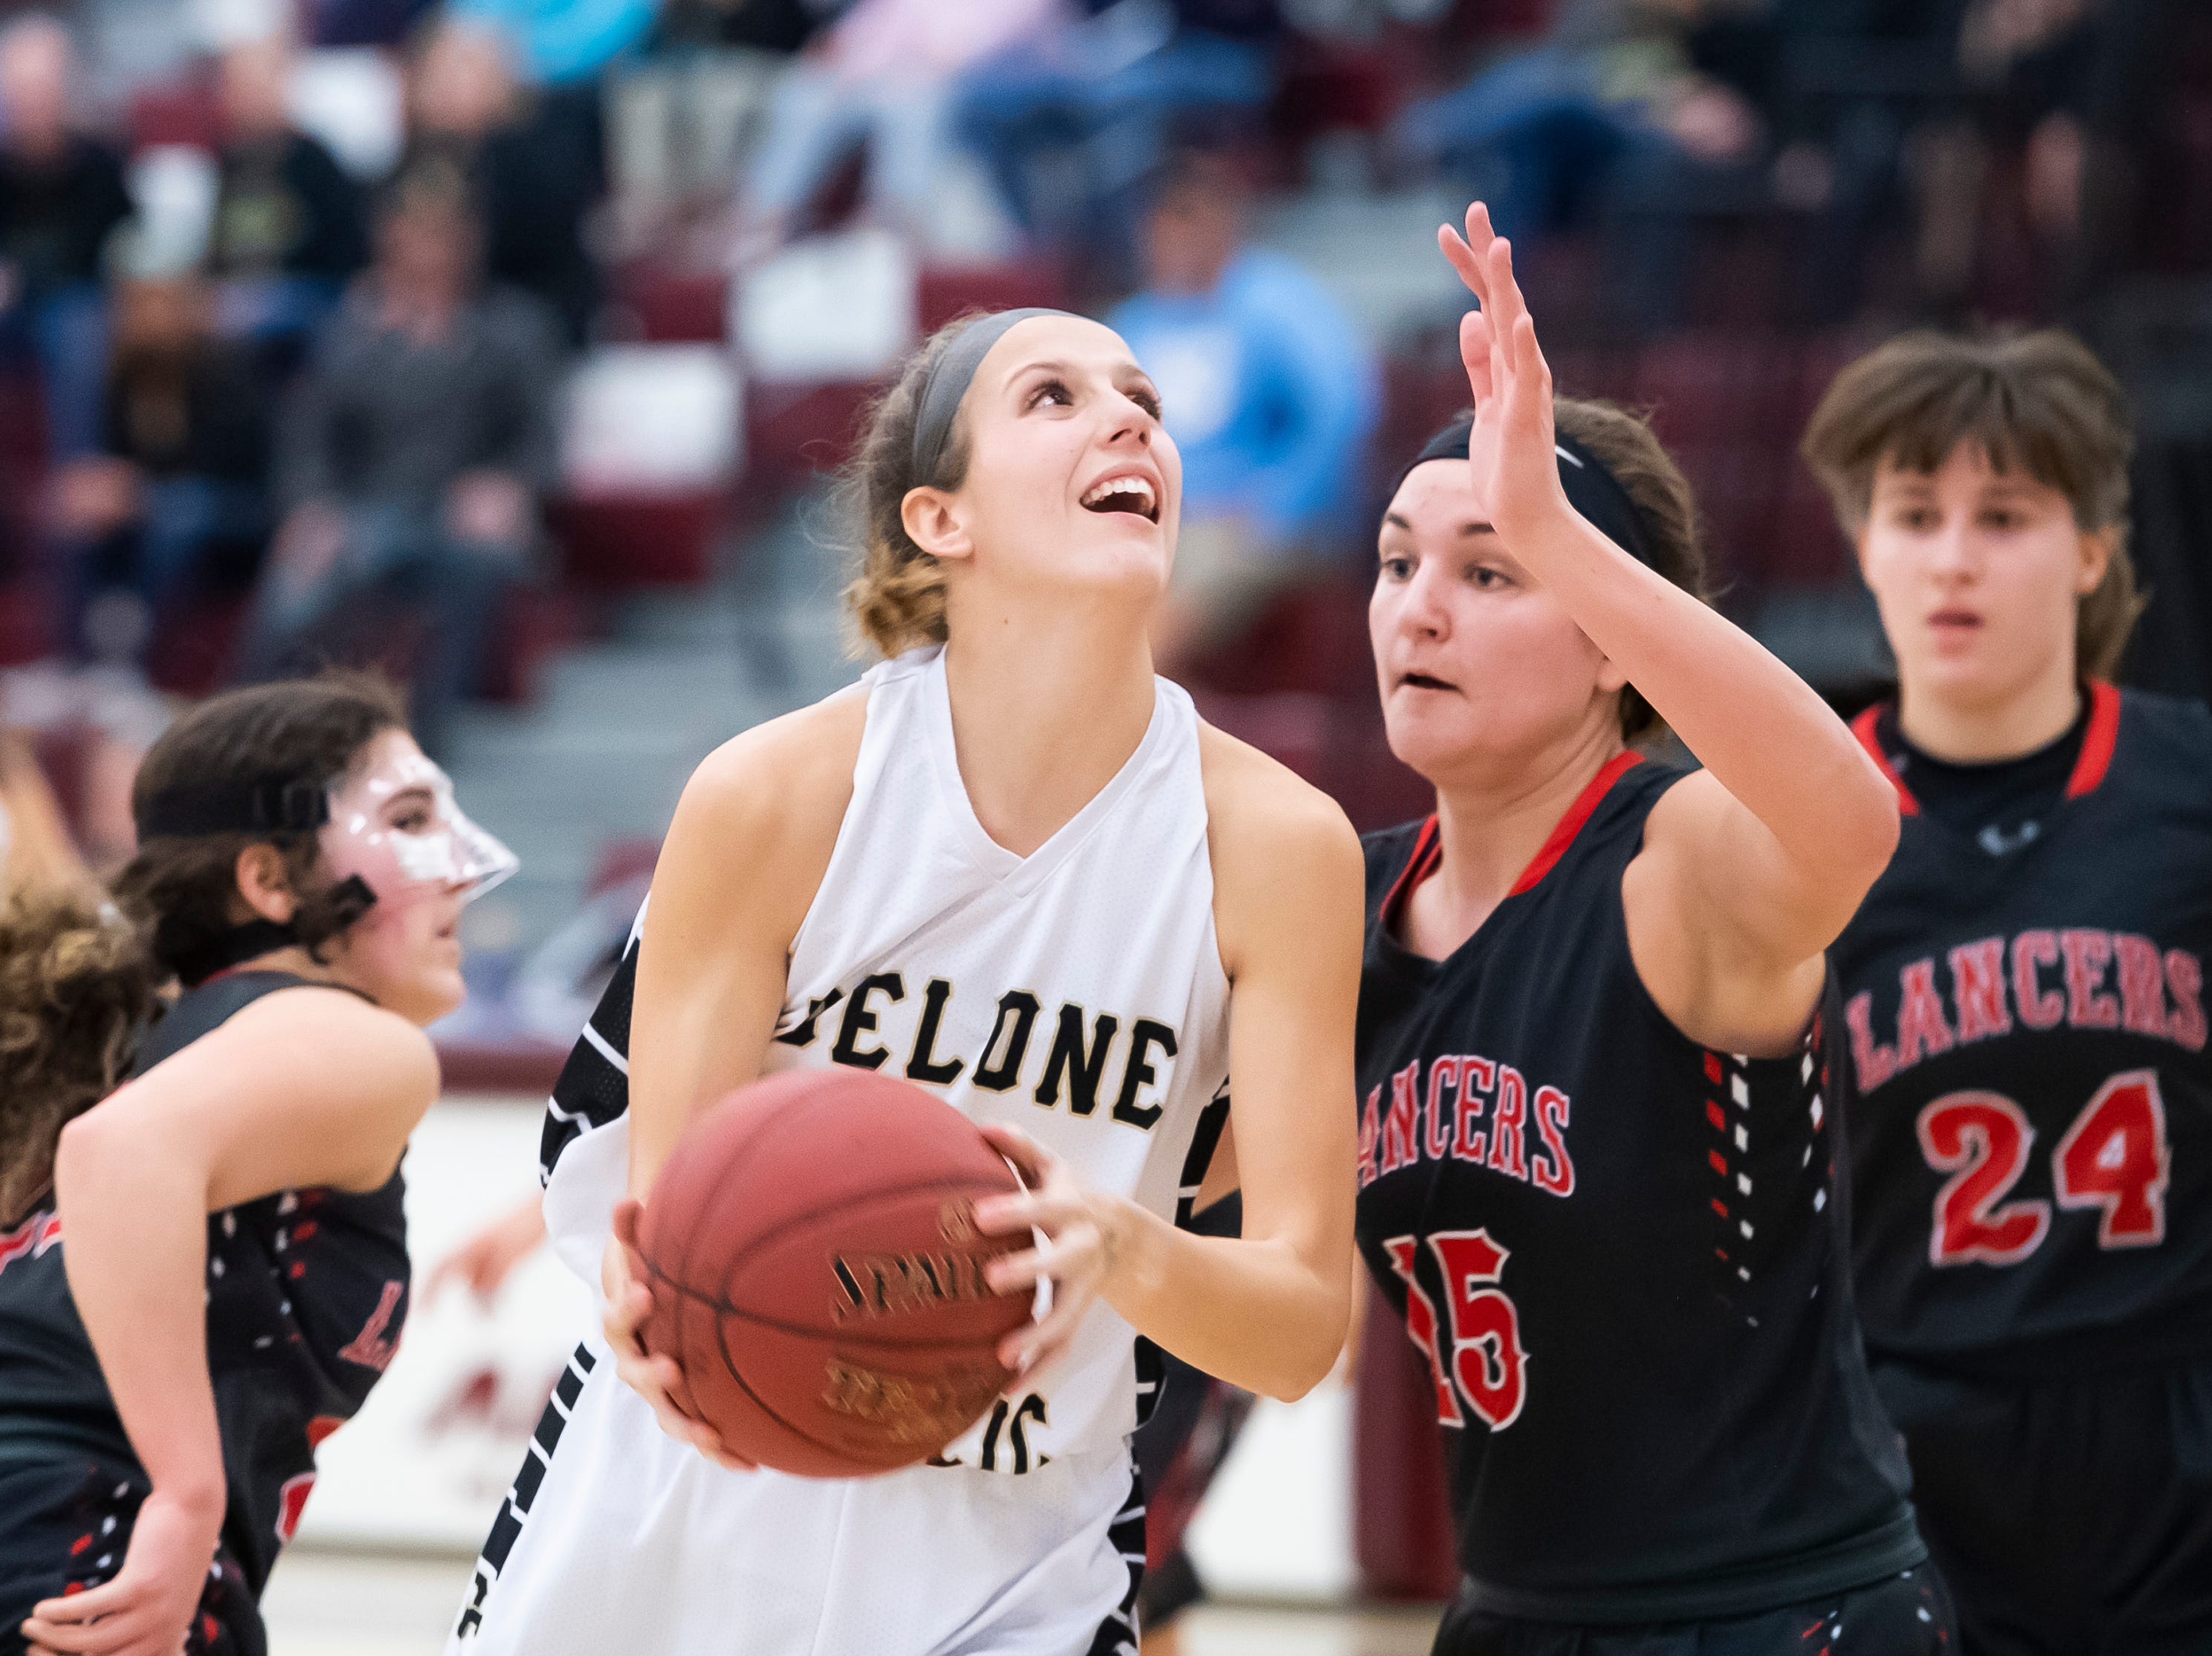 Delone Catholic's Maggie Wells looks to shoot against Neshannock during a PIAA 3A quarterfinal in Altoona, Pa., on Friday, March 15, 2019. The Squirettes won 50-41.